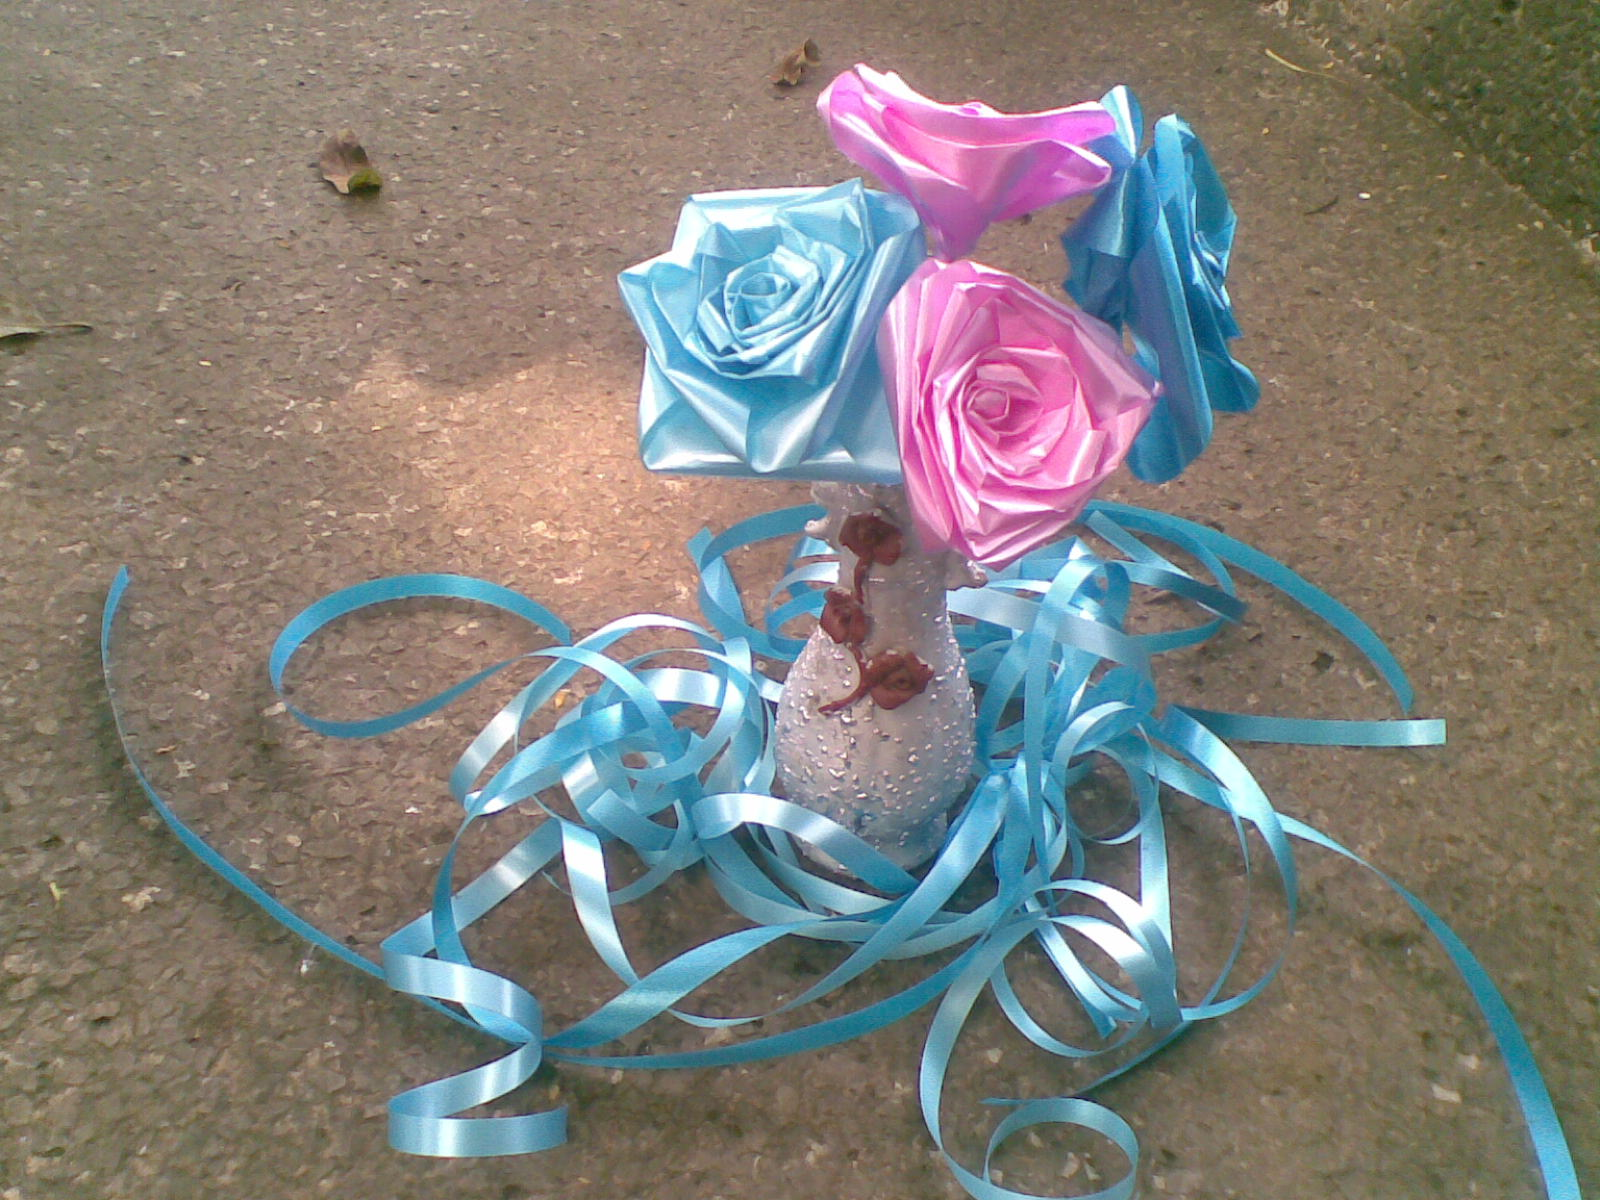 Peekadot paper ribbon roses it came out so nice after the party she took it back home mightylinksfo